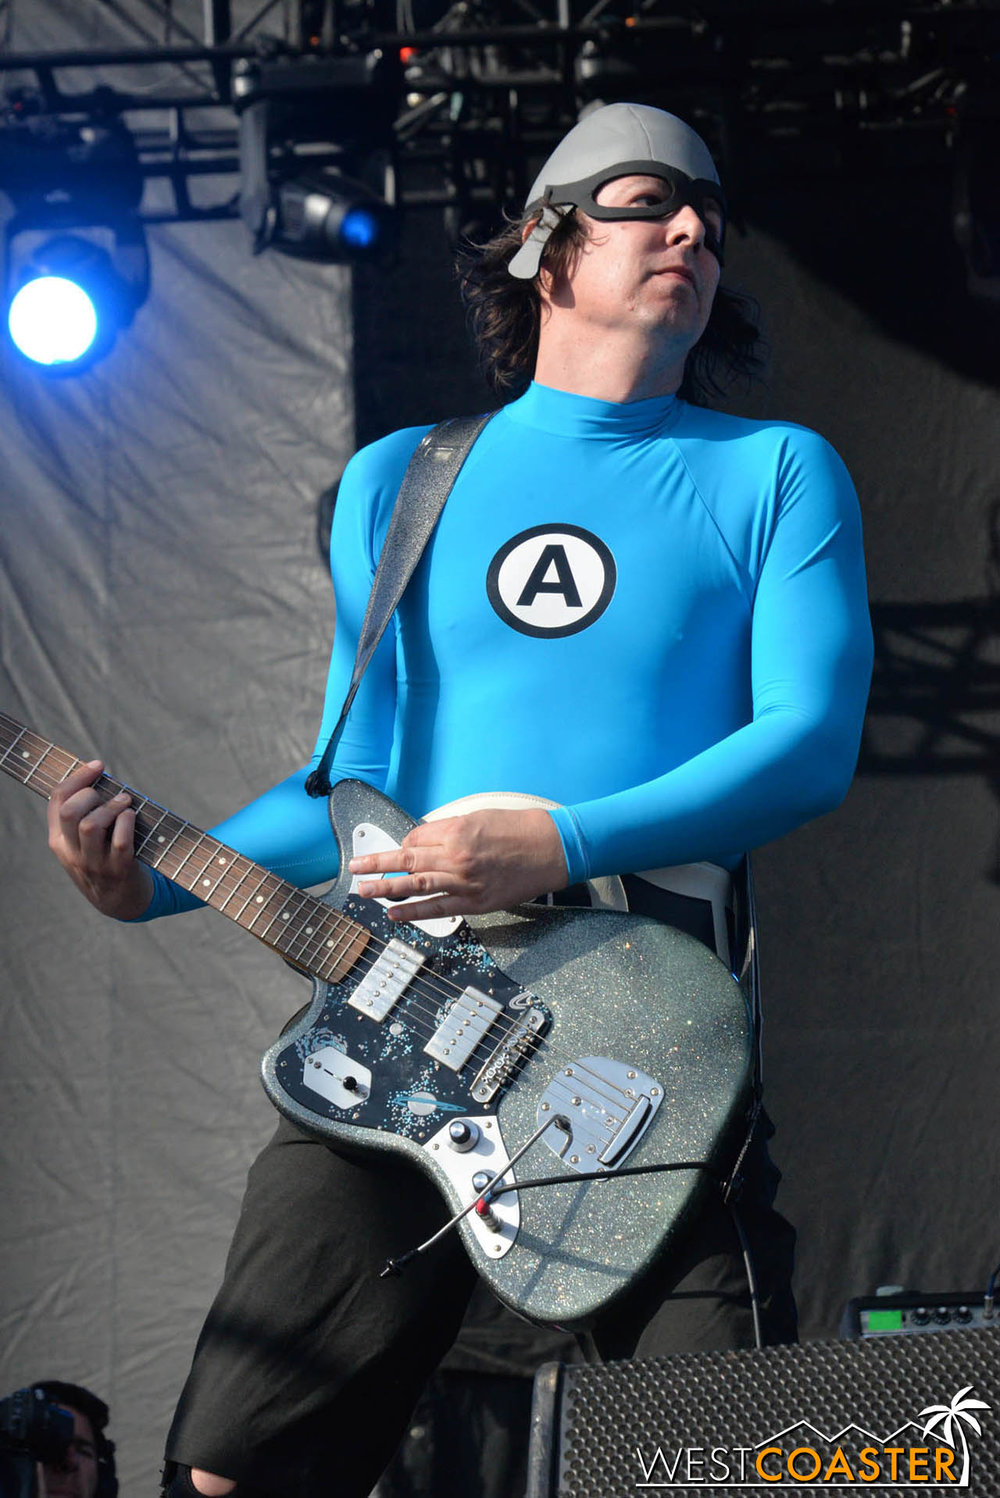 B2tB-18_0504-D-Music-3-Aquabats-0019.jpg